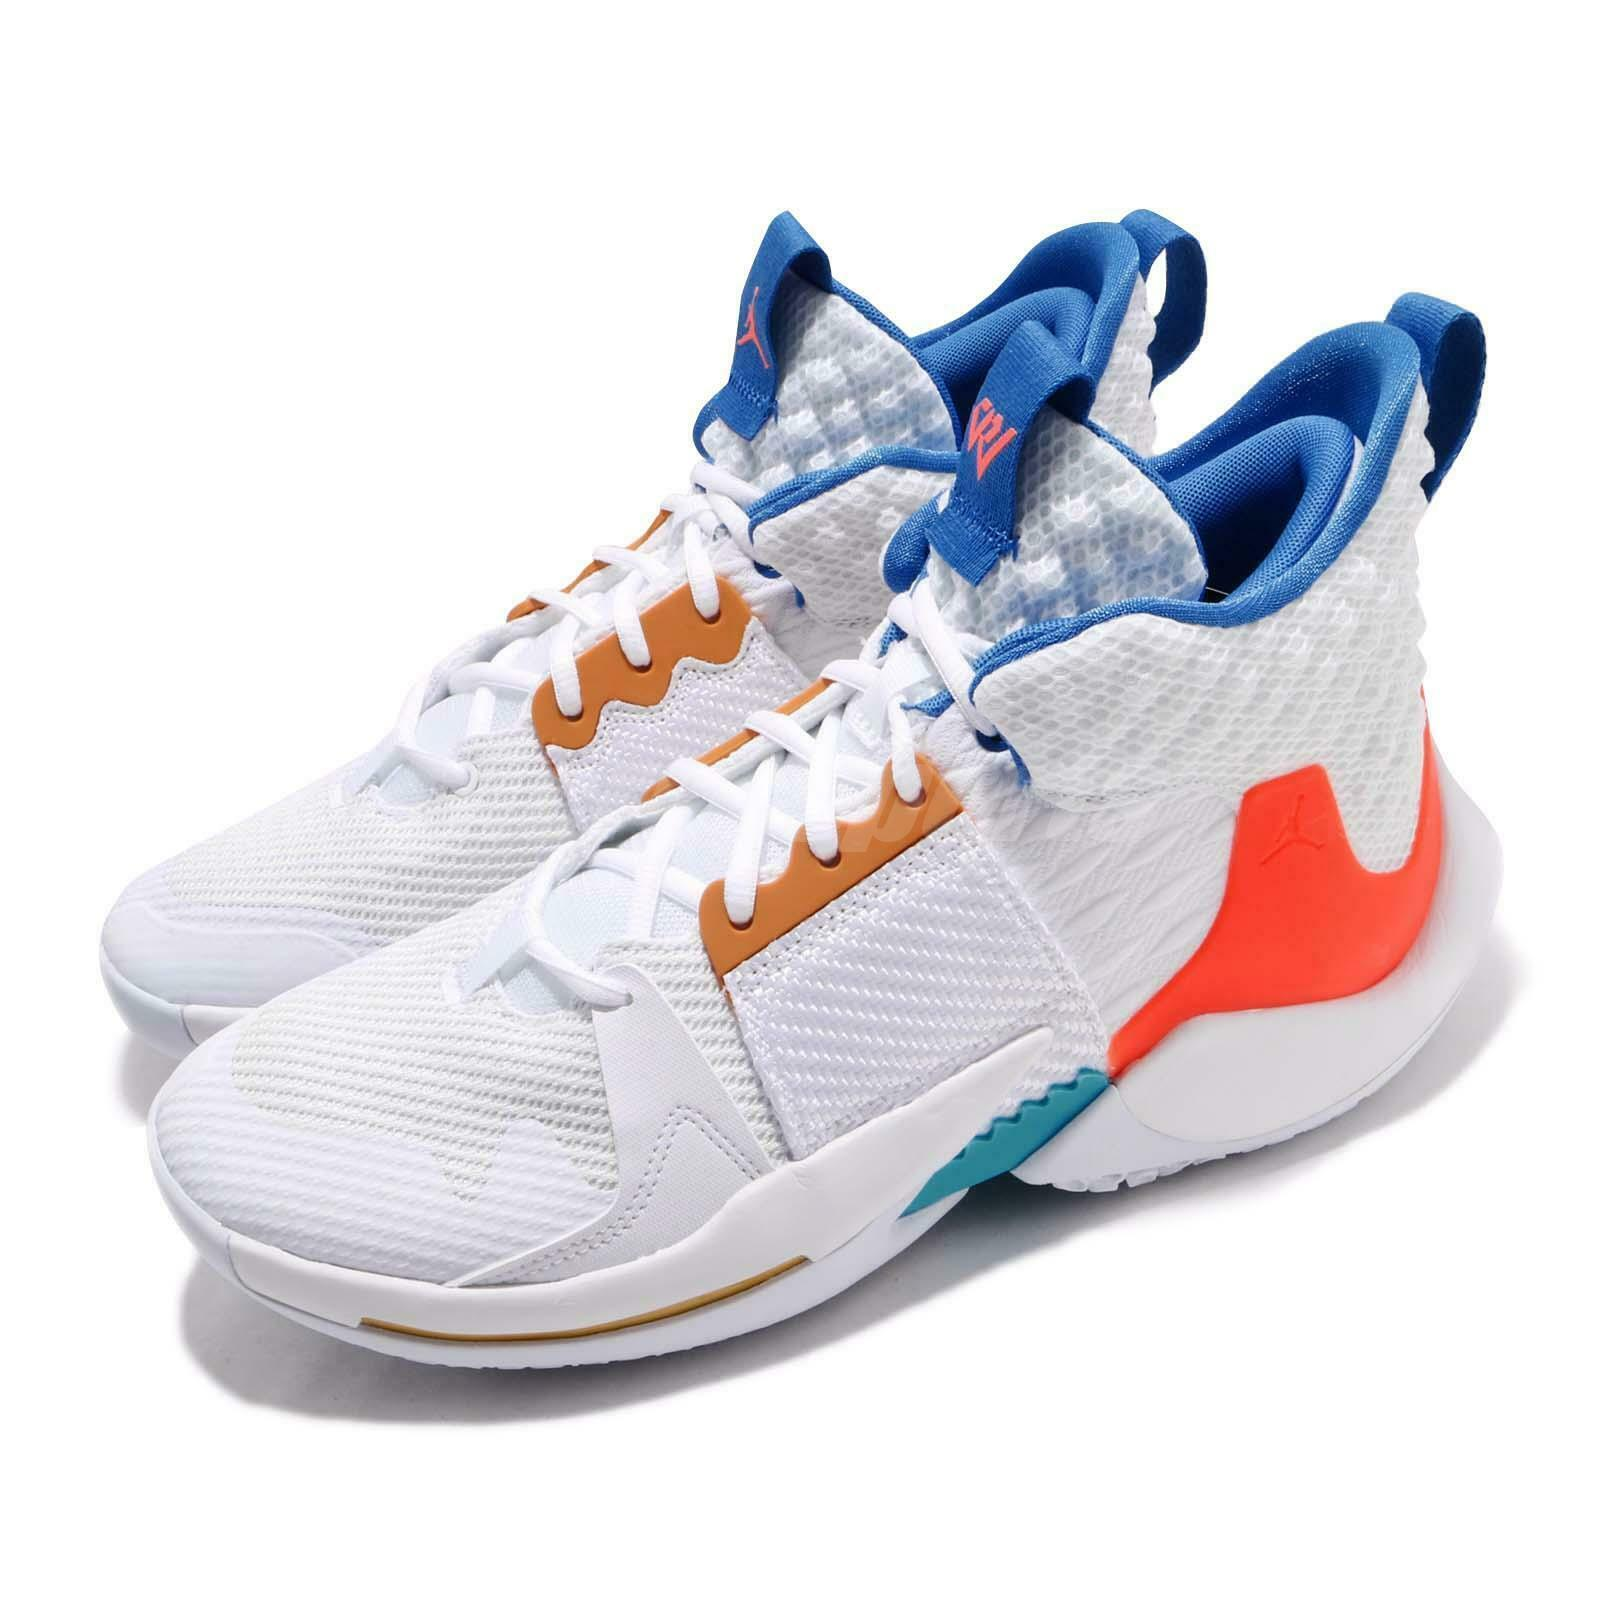 Nike Jordan Why Not Zer0.2 PF White OKC Russell Westbrook Mens shoes BV6352-100